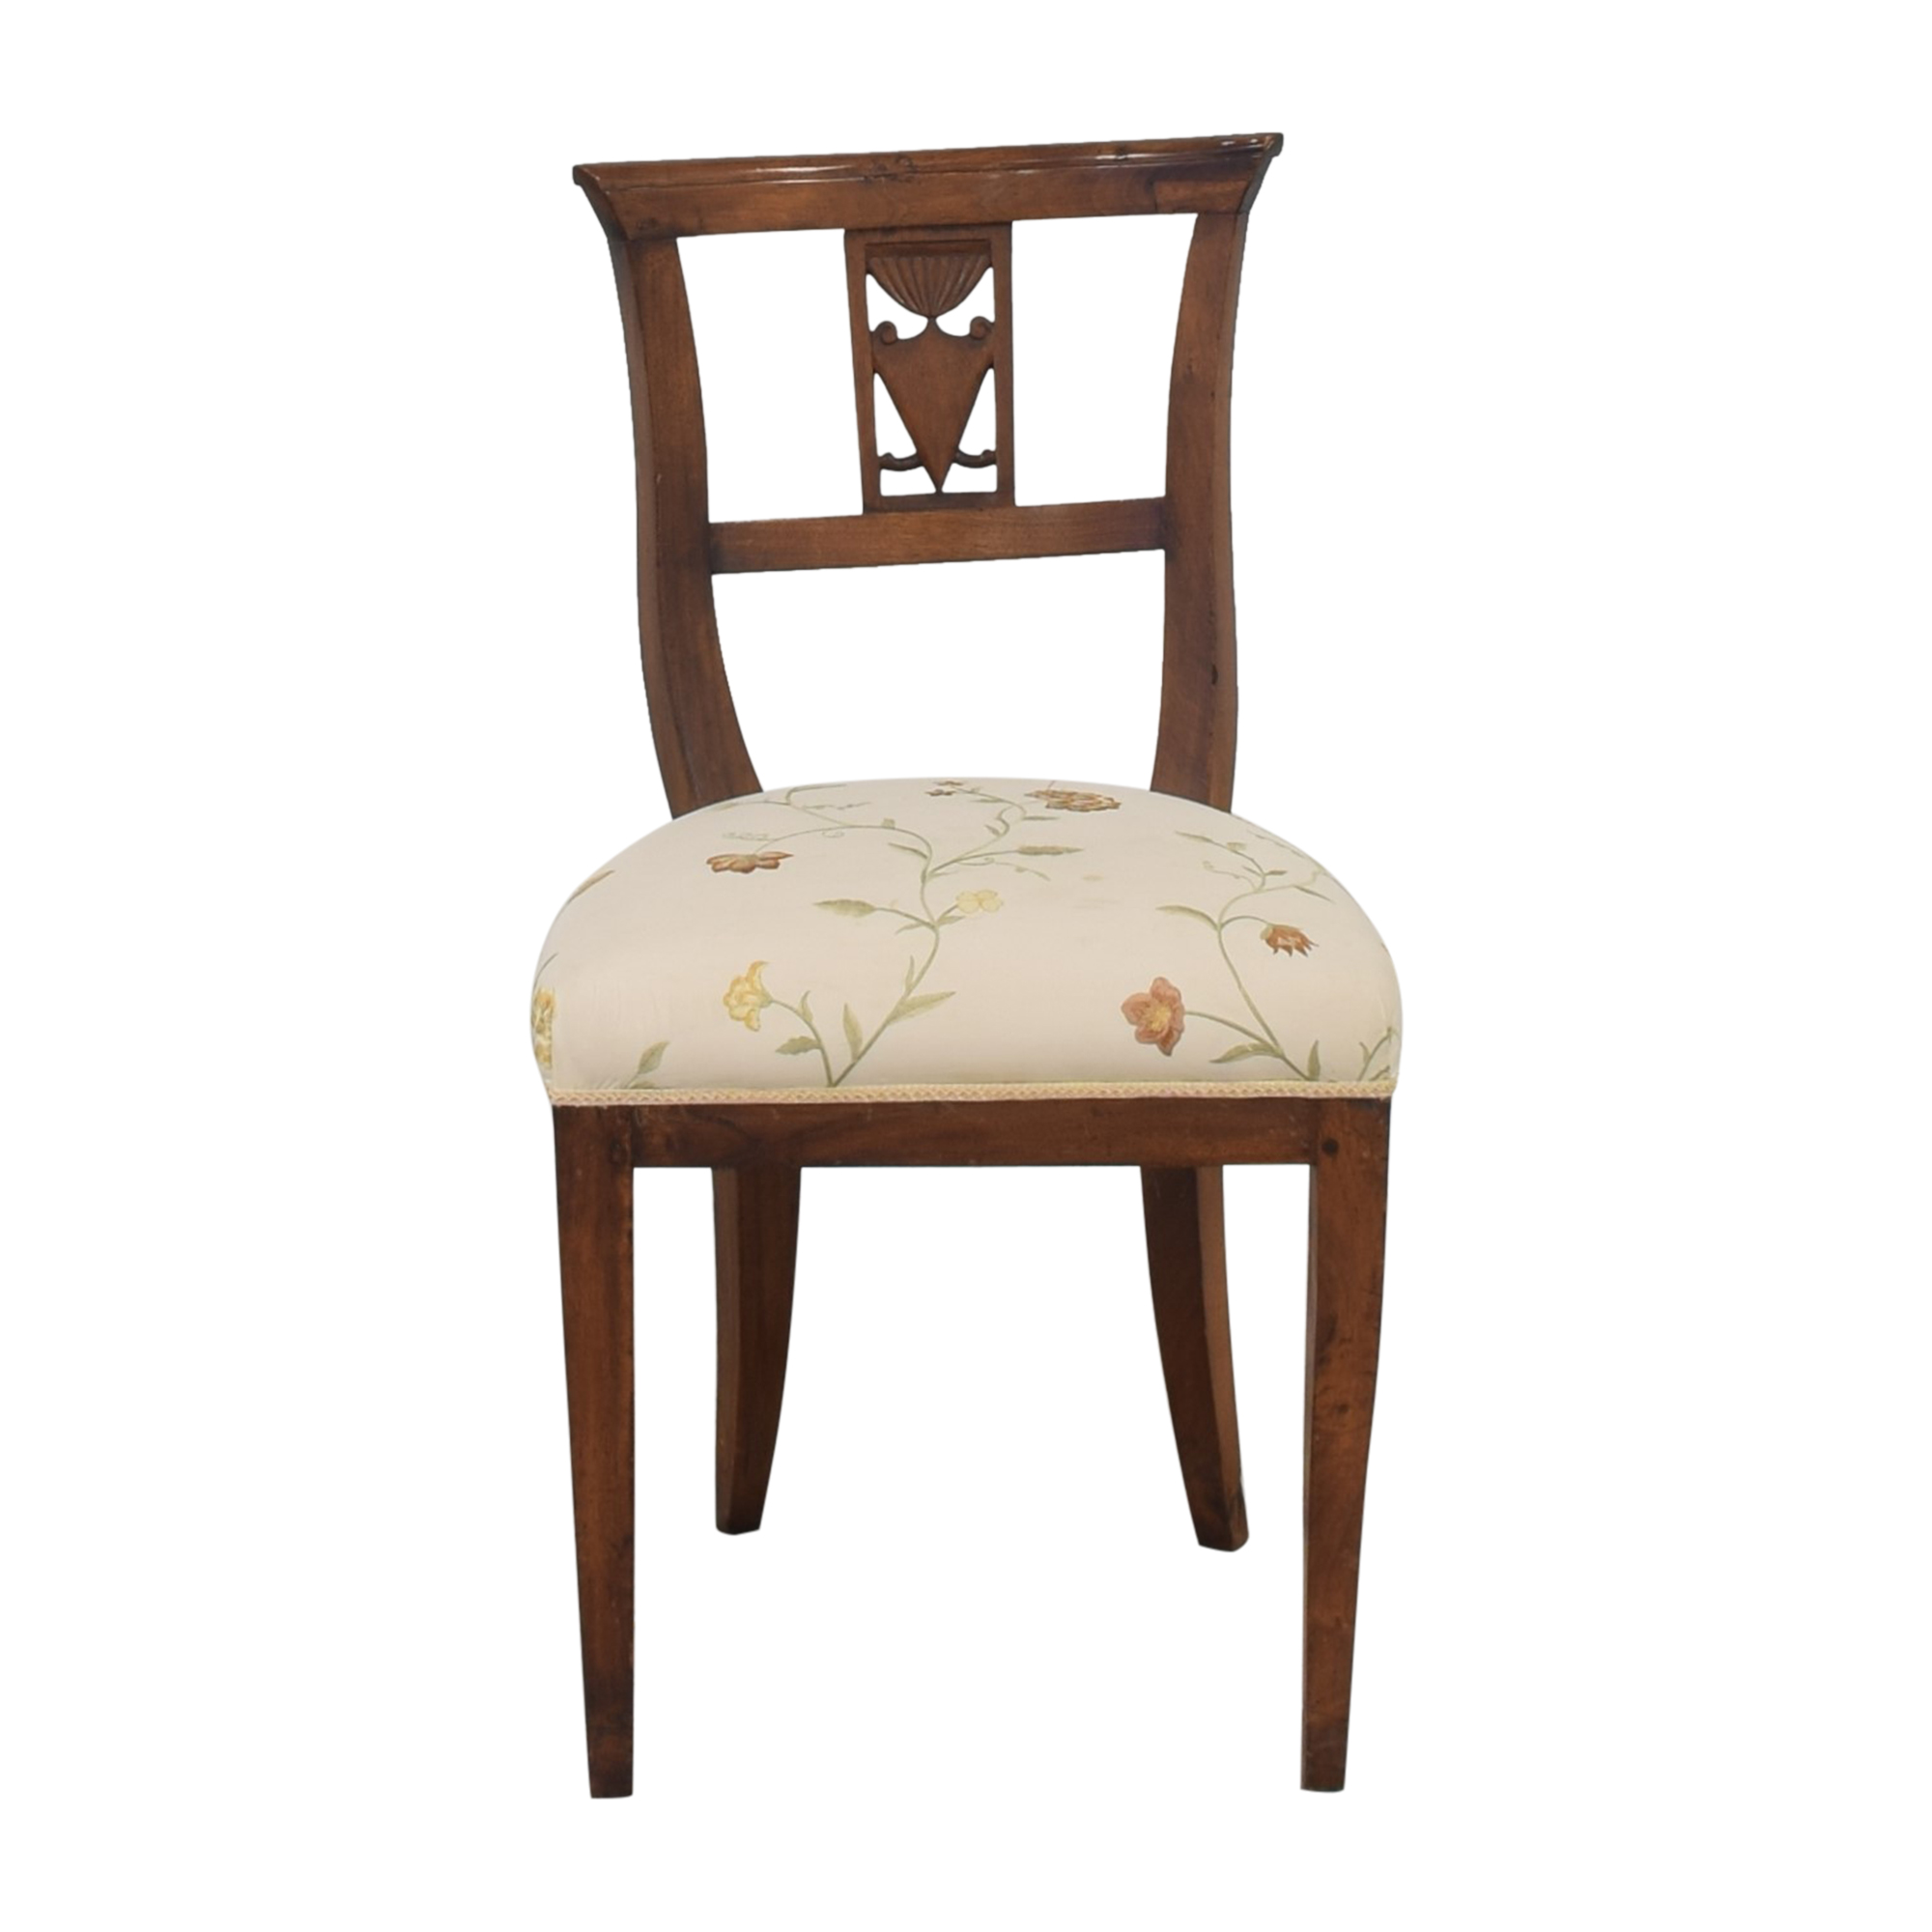 buy Vintage Upholstered Chair with Carving  Chairs